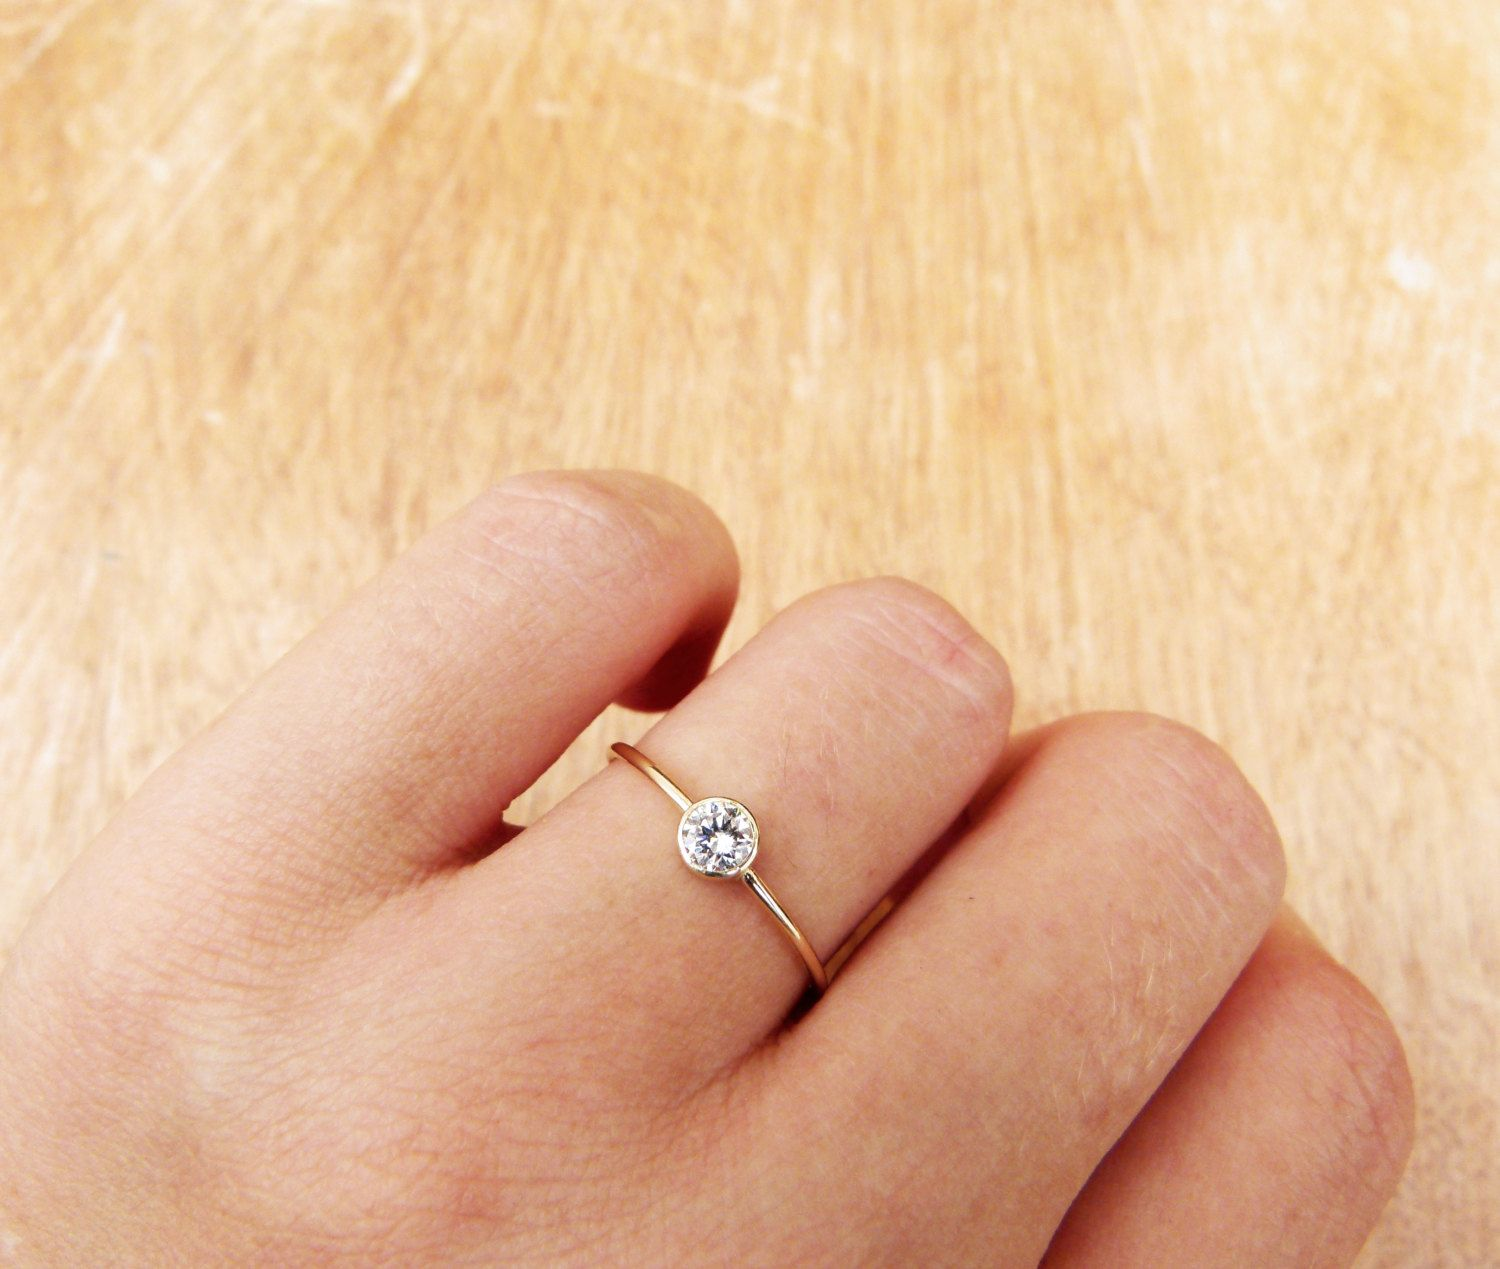 Delicate Engagement Ring, Simple Engagement Ring, 02 Carat Diamond,  Minimalist Diamond Ring, Round Cut Diamond Ring